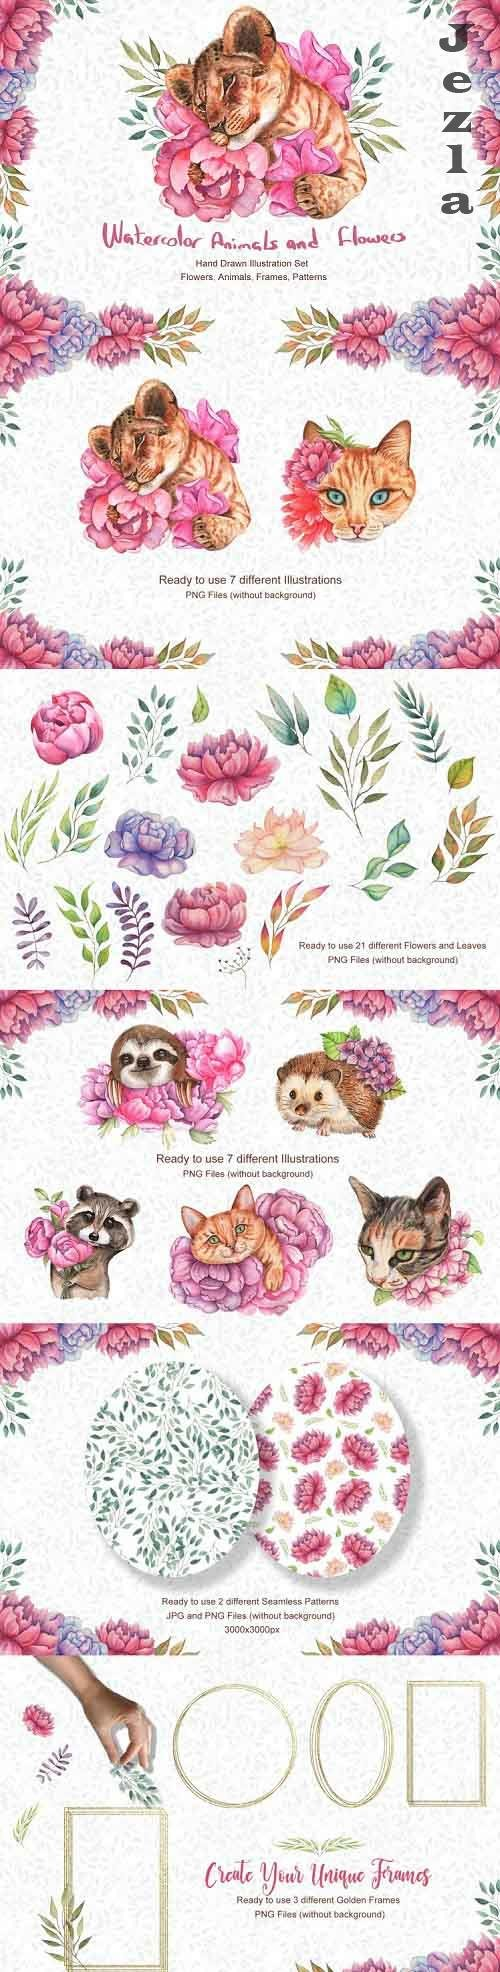 Watercolor Flowers and Animals SET - 831423